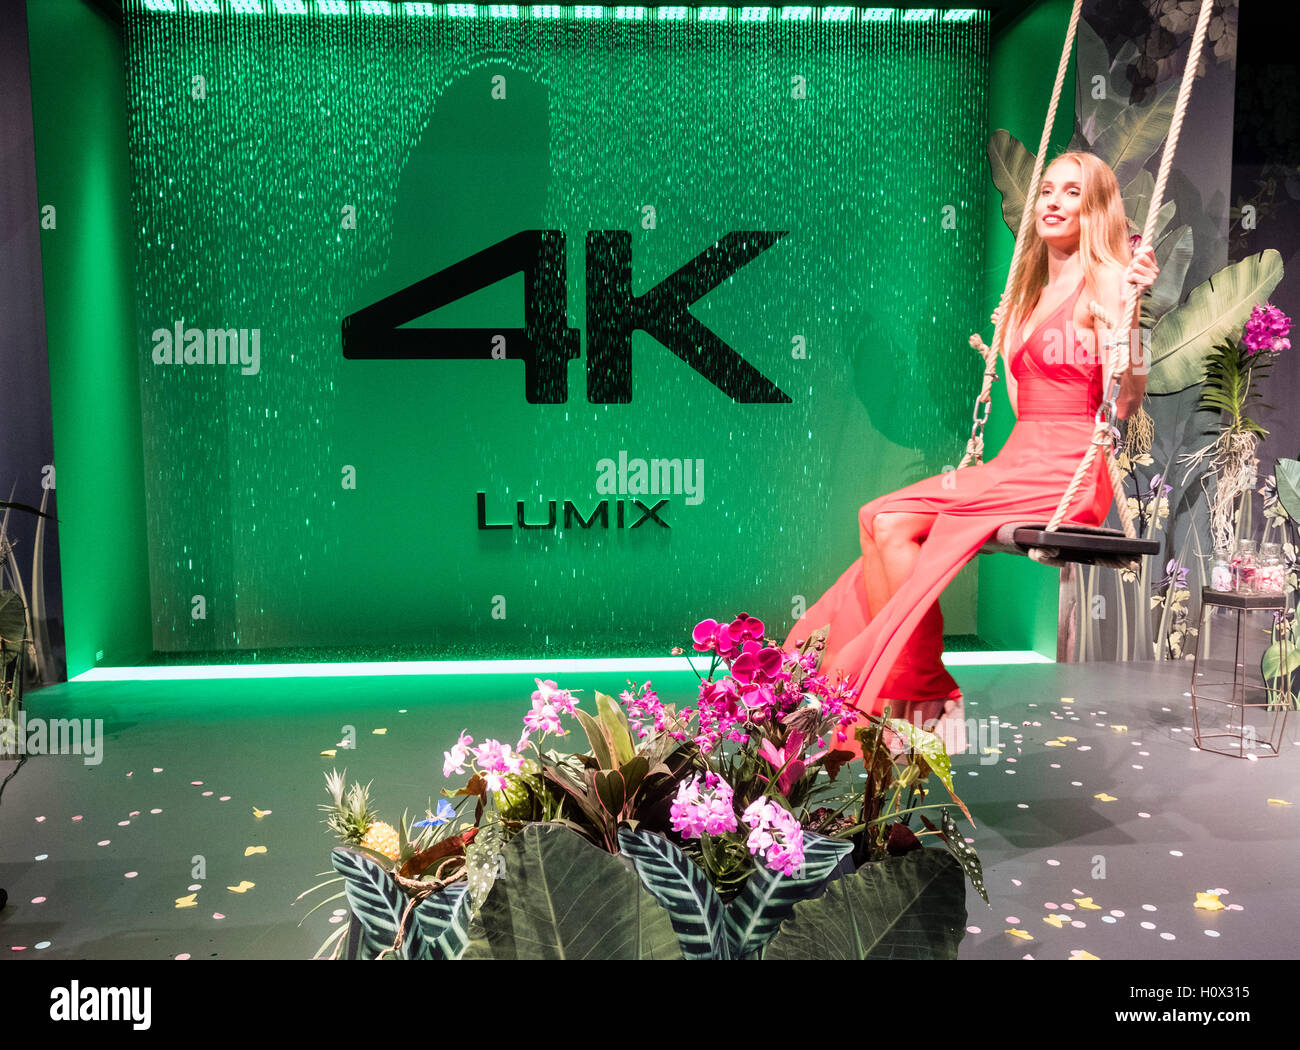 Panasonic Lumix 4K video exhibit with model at Photokina trade fair in Cologne, Germany , 2016 - Stock Image